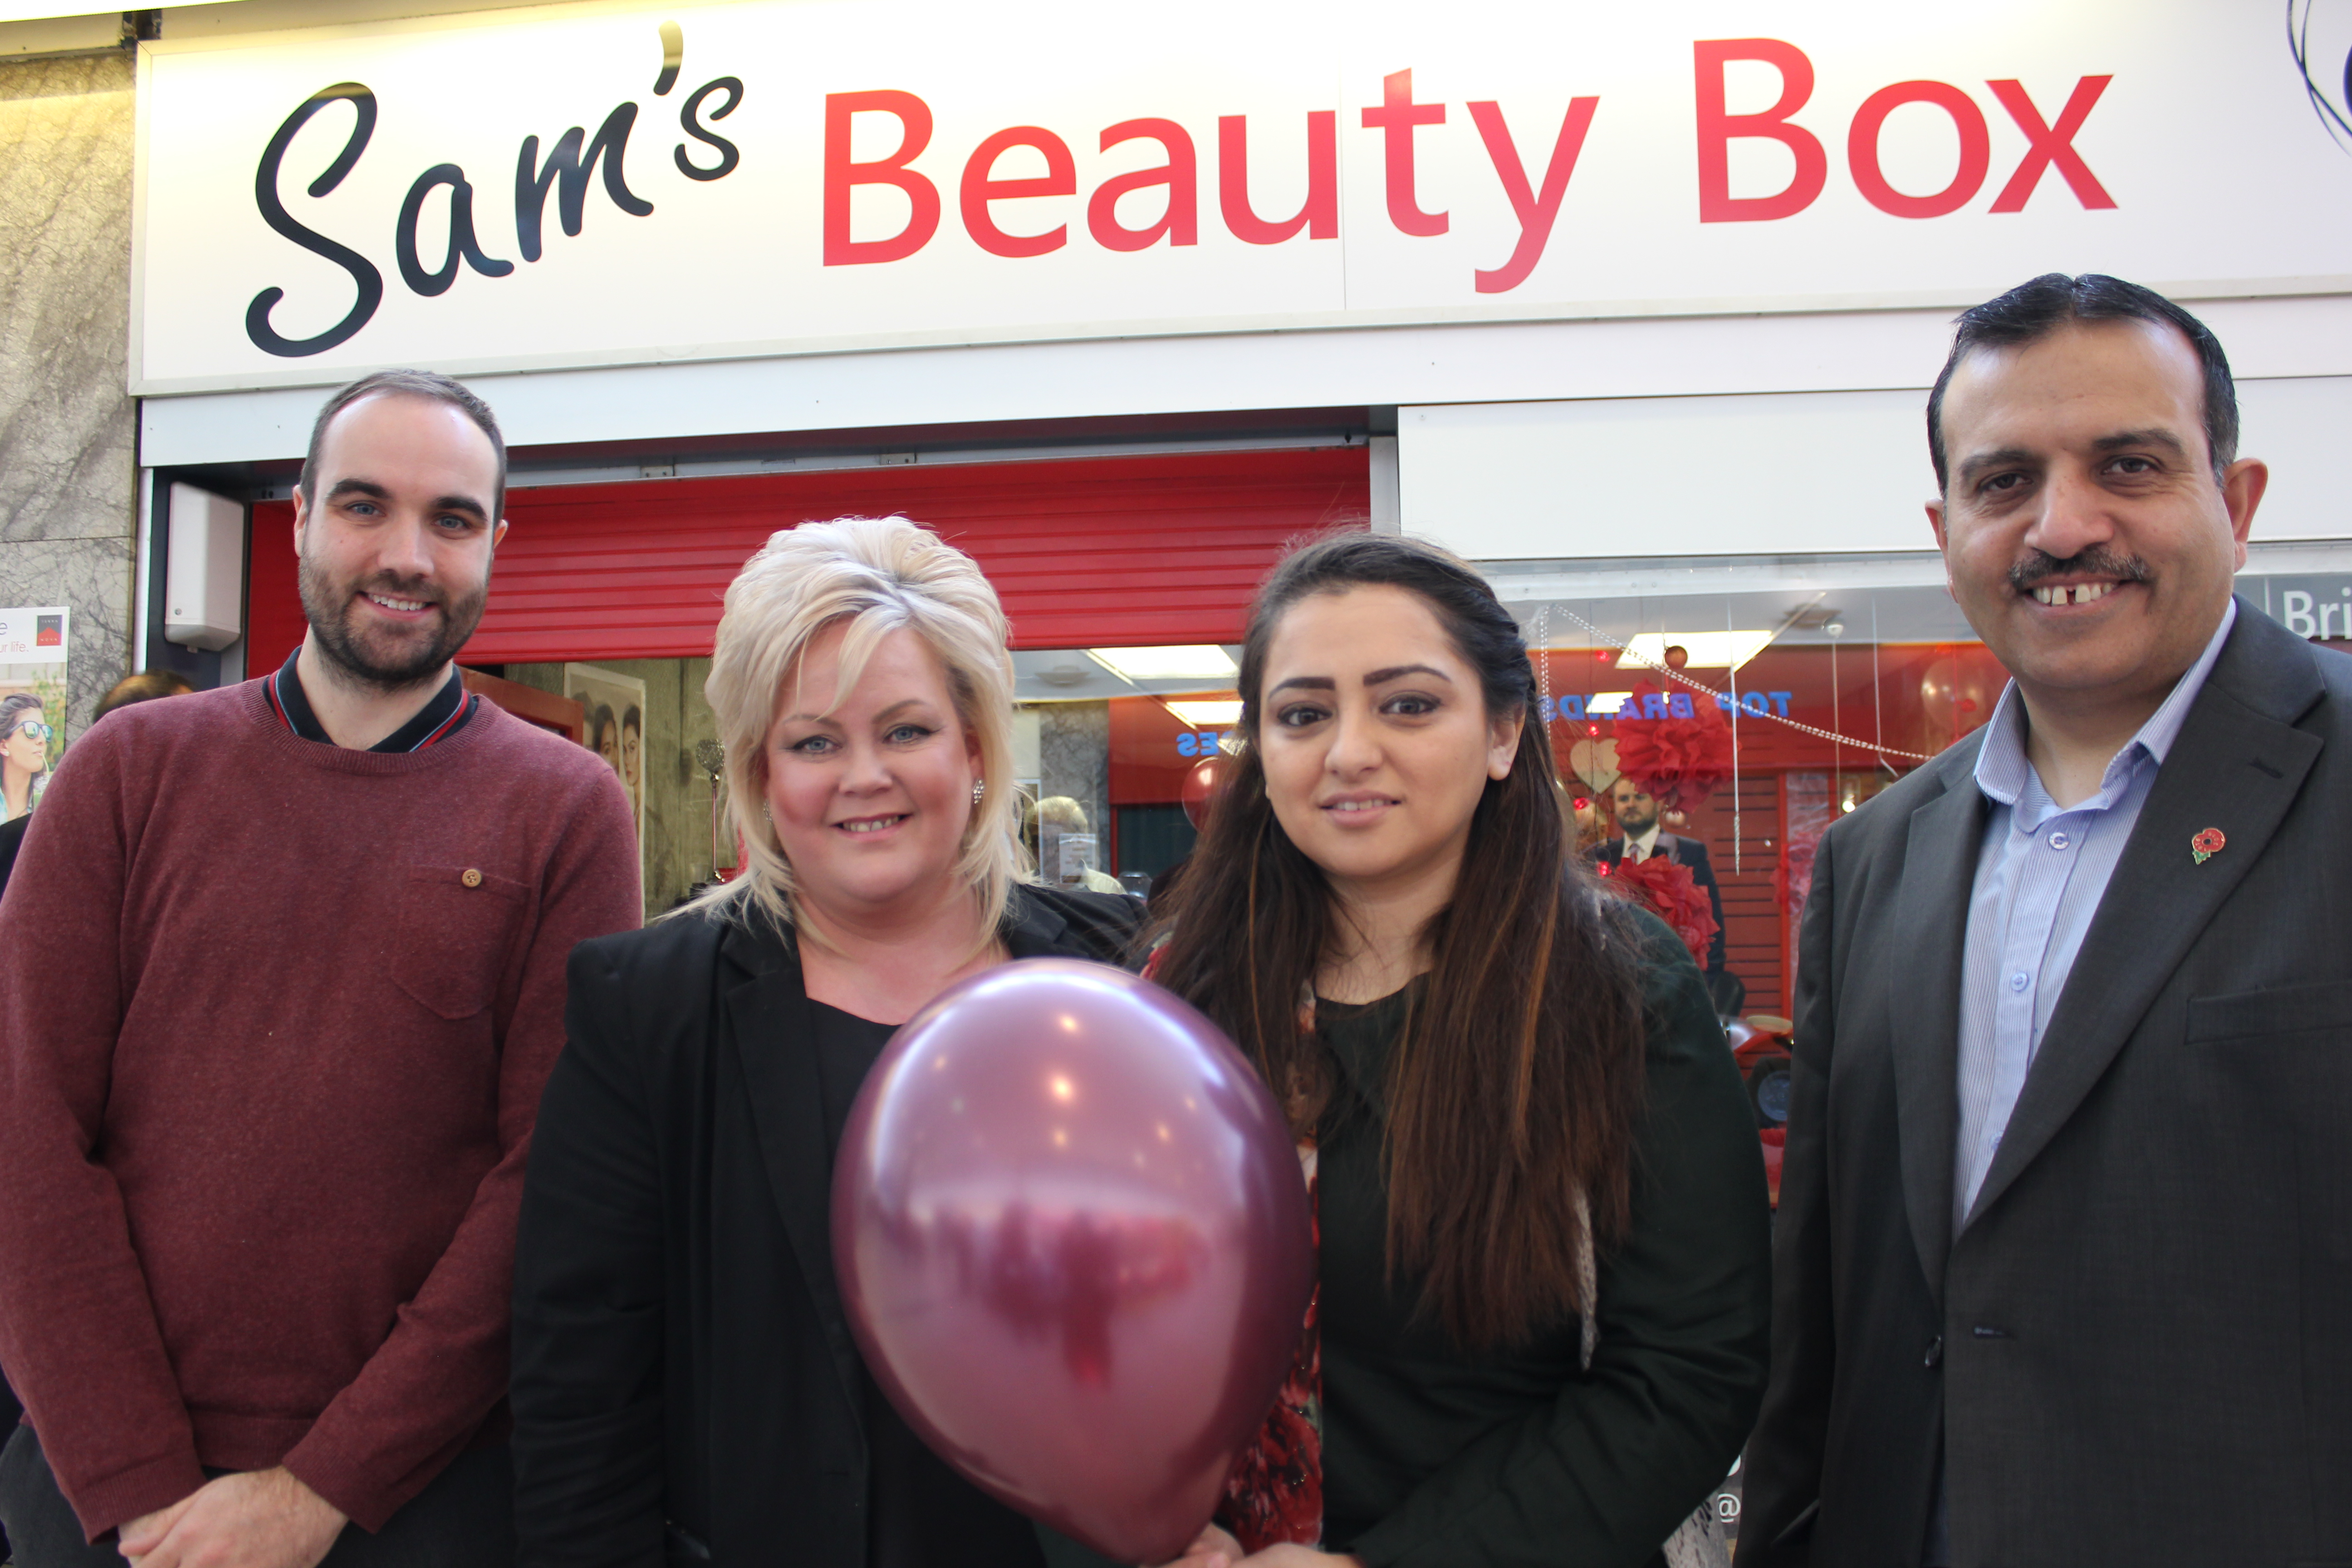 Sam's Beauty Box triumphs in Pendle Rise  Win a Shop Competition